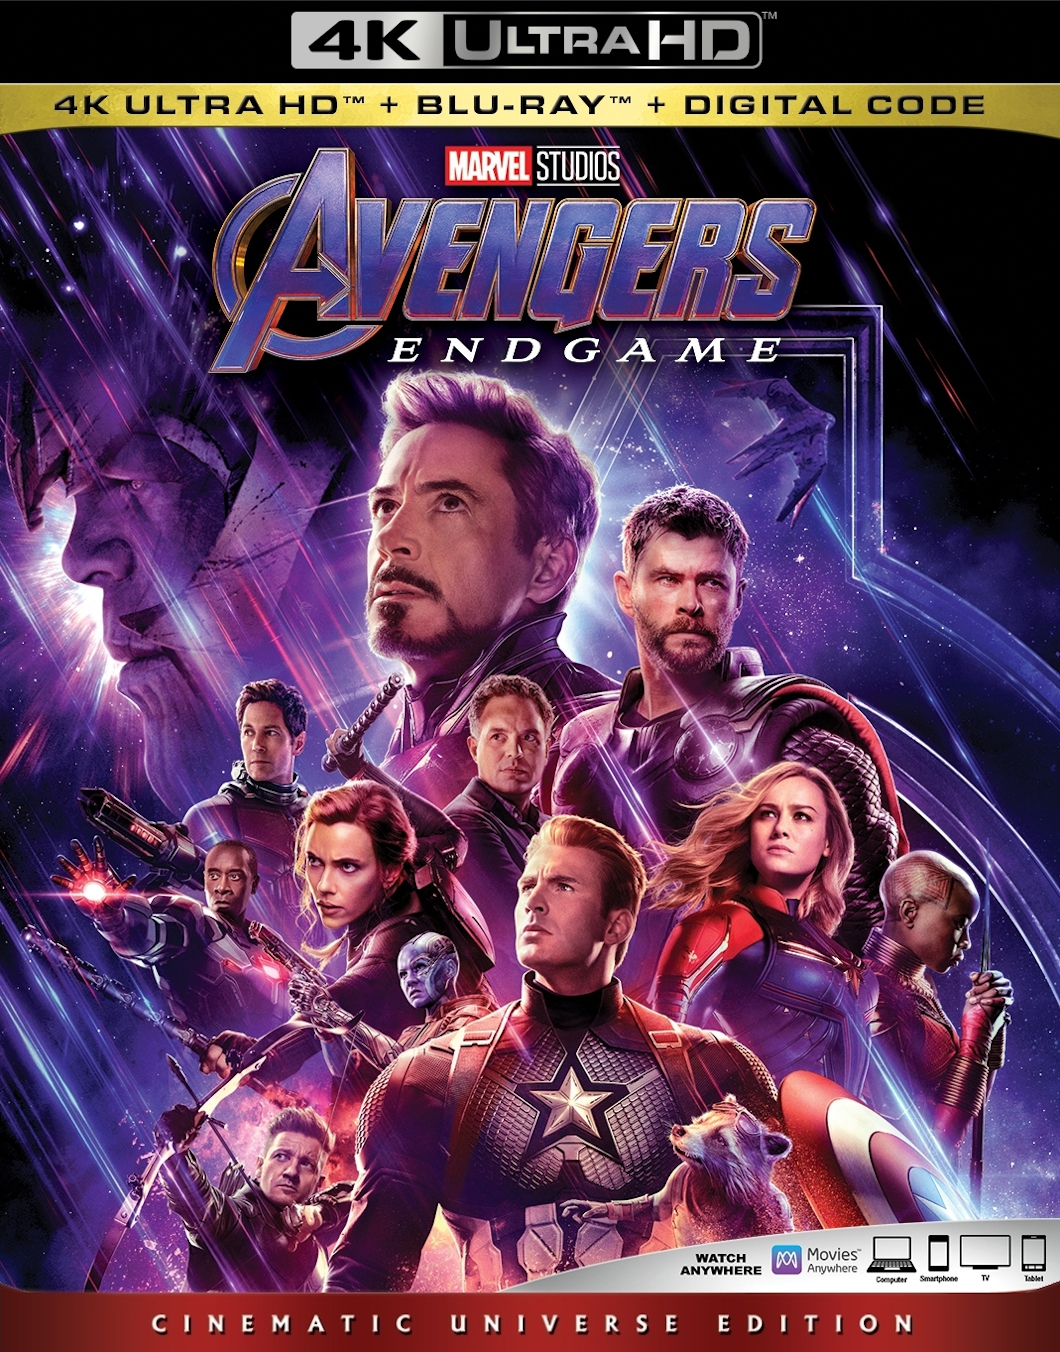 Avengers Endgame 4K UHD- Best 4K Blu-ray Marvel Superhero Movies